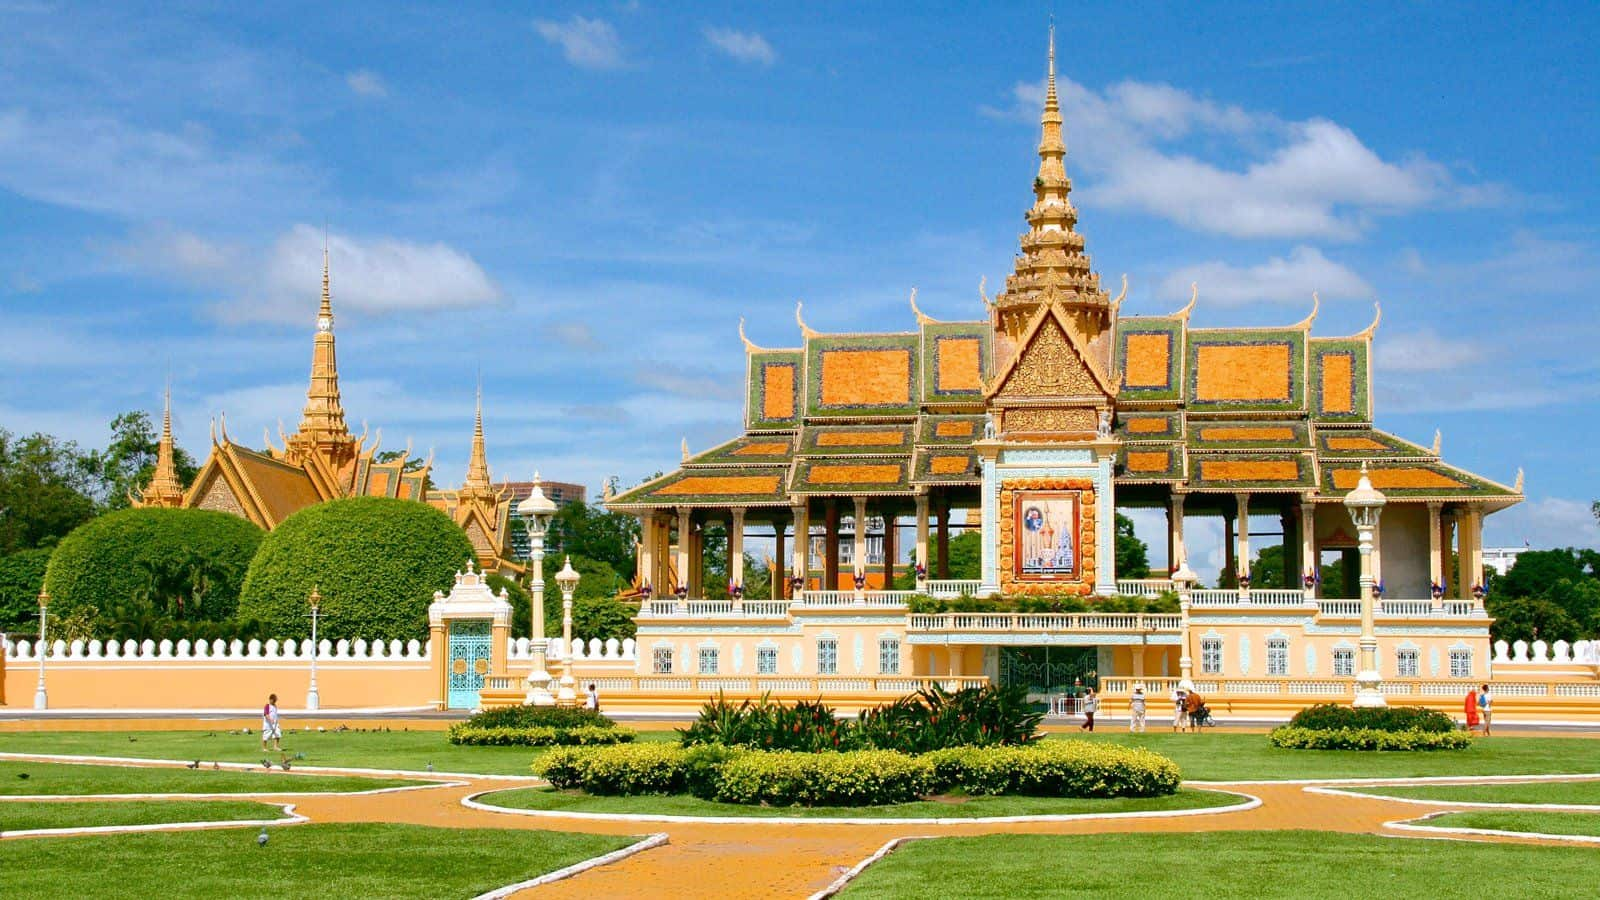 Royal Palace / Best Things To Do In Phnom Penh